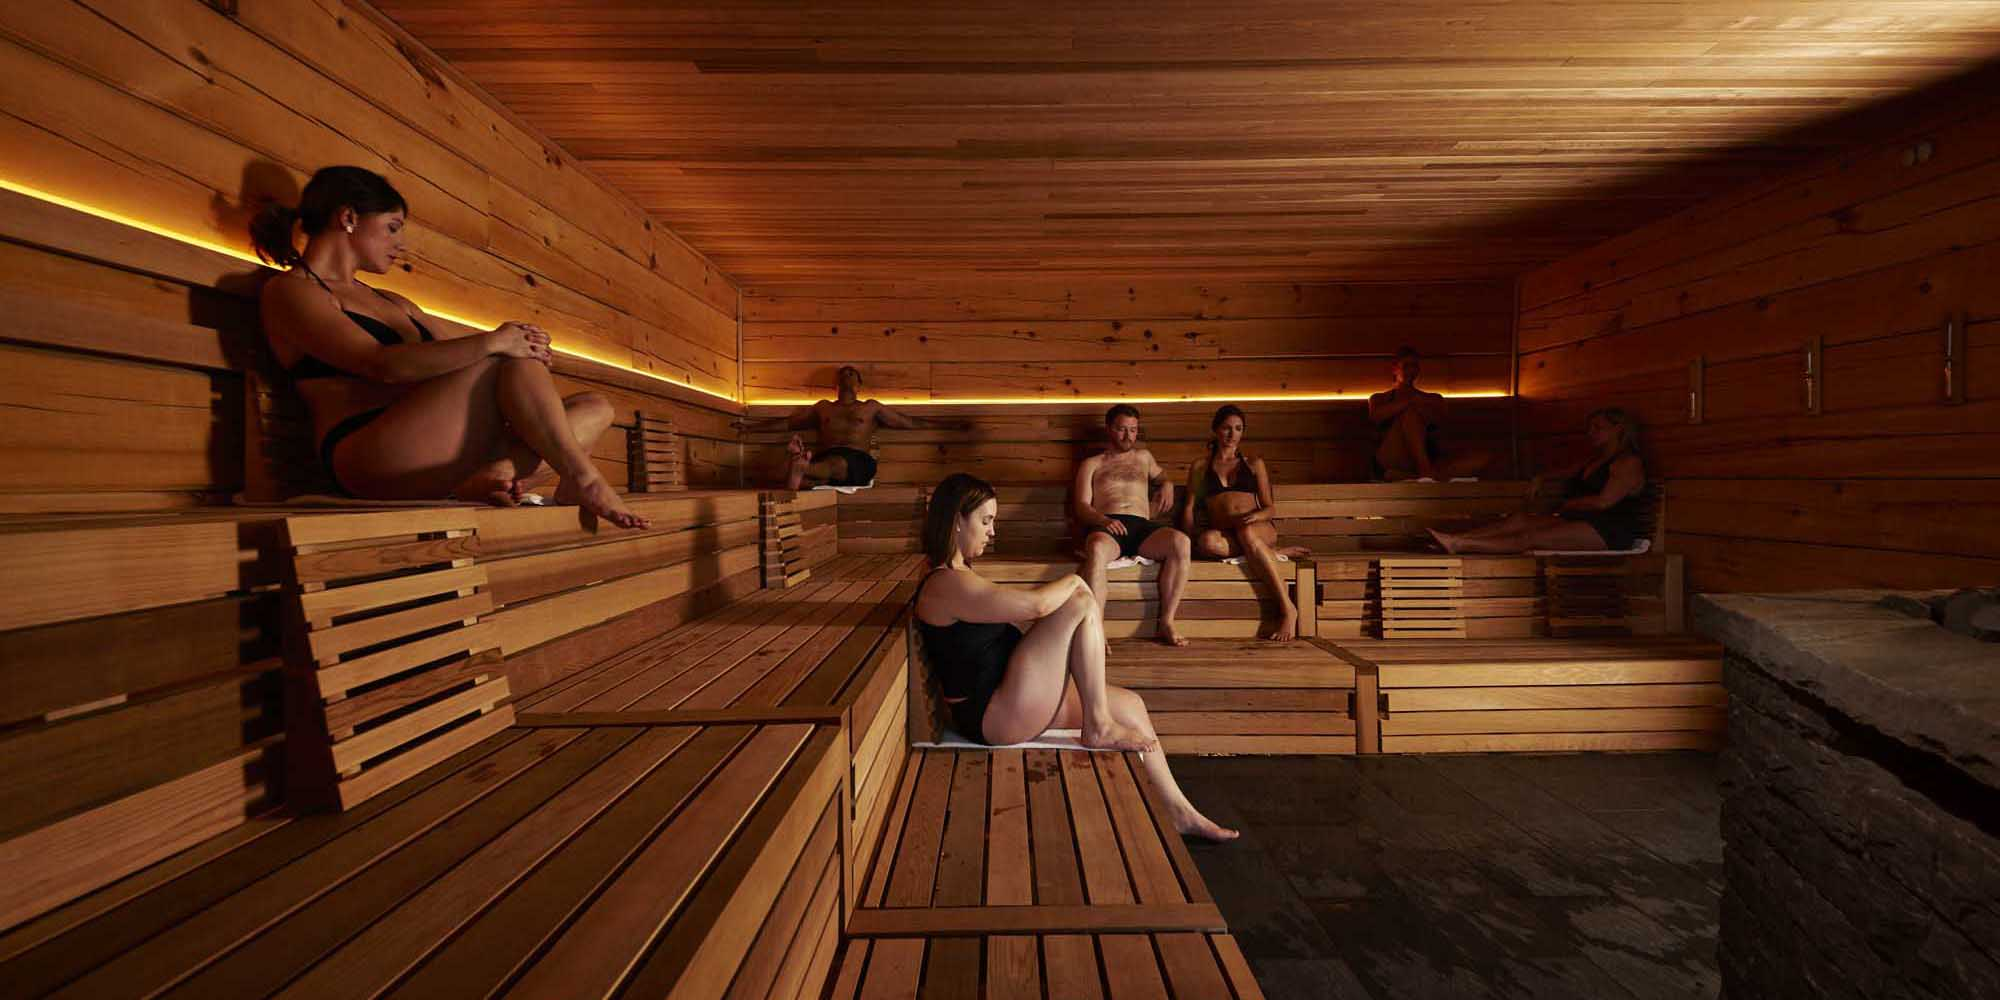 finland saunas unisex bing images. Black Bedroom Furniture Sets. Home Design Ideas